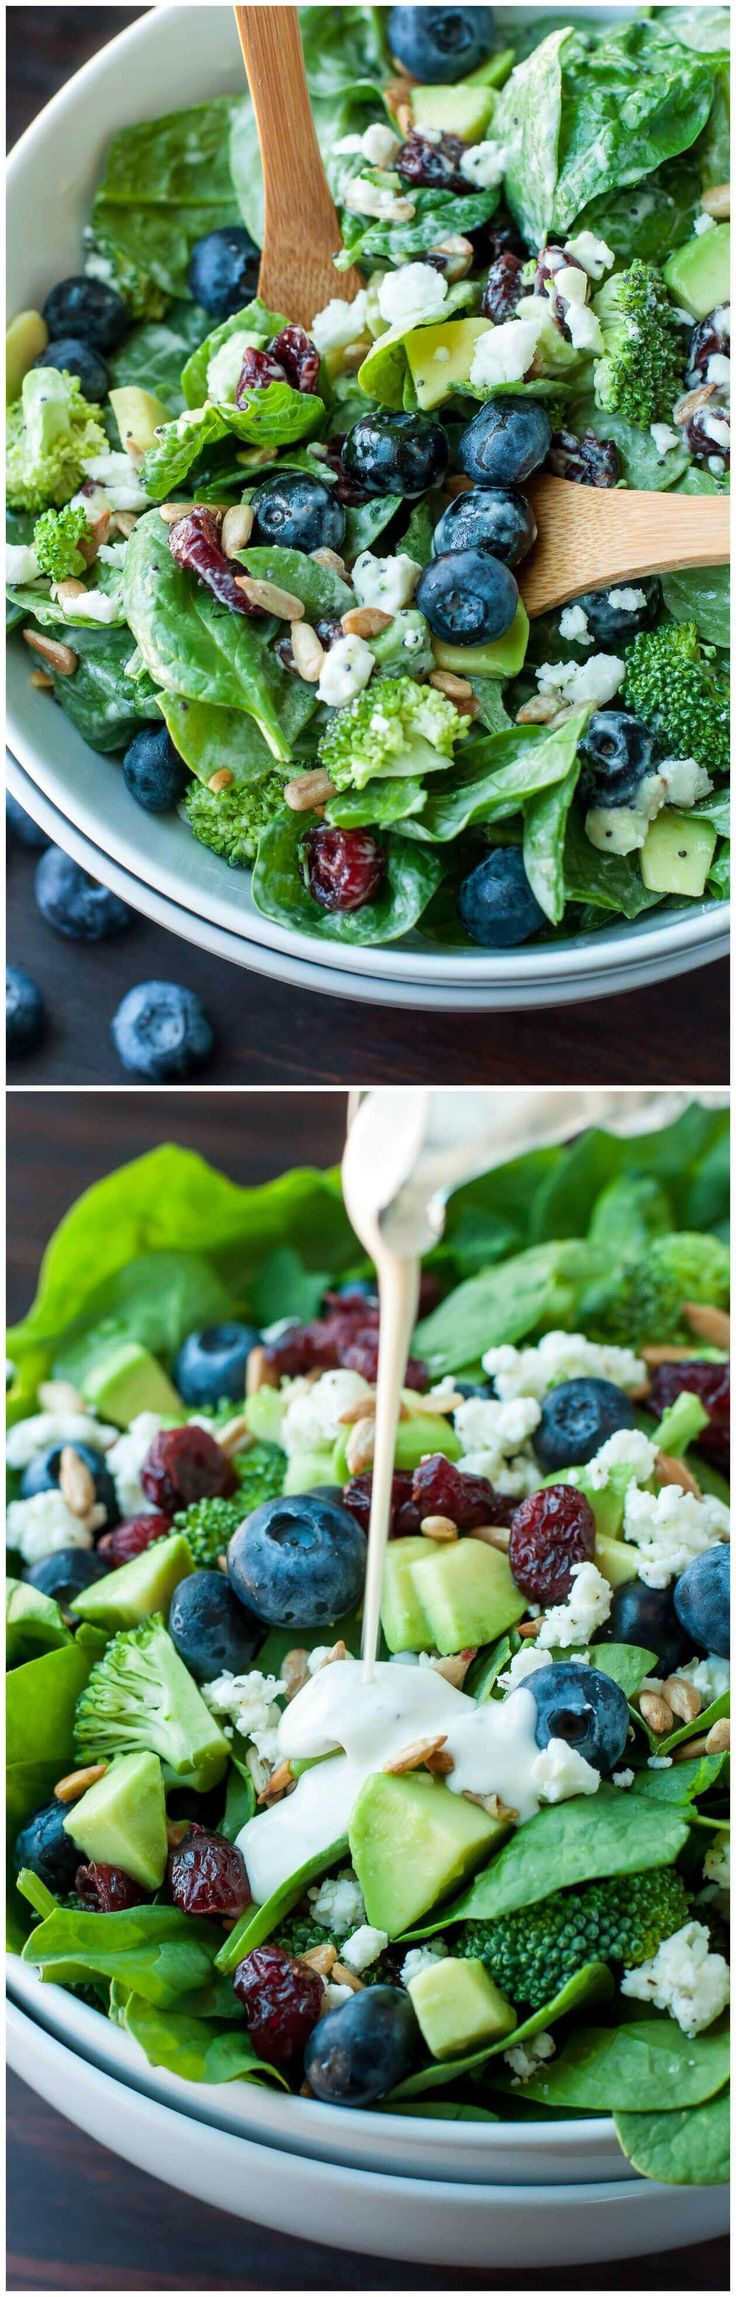 BLUEBERRY BROCCOLI SPINACH SALAD WITH POPPYSEED RANCH | Tasty Food Collection